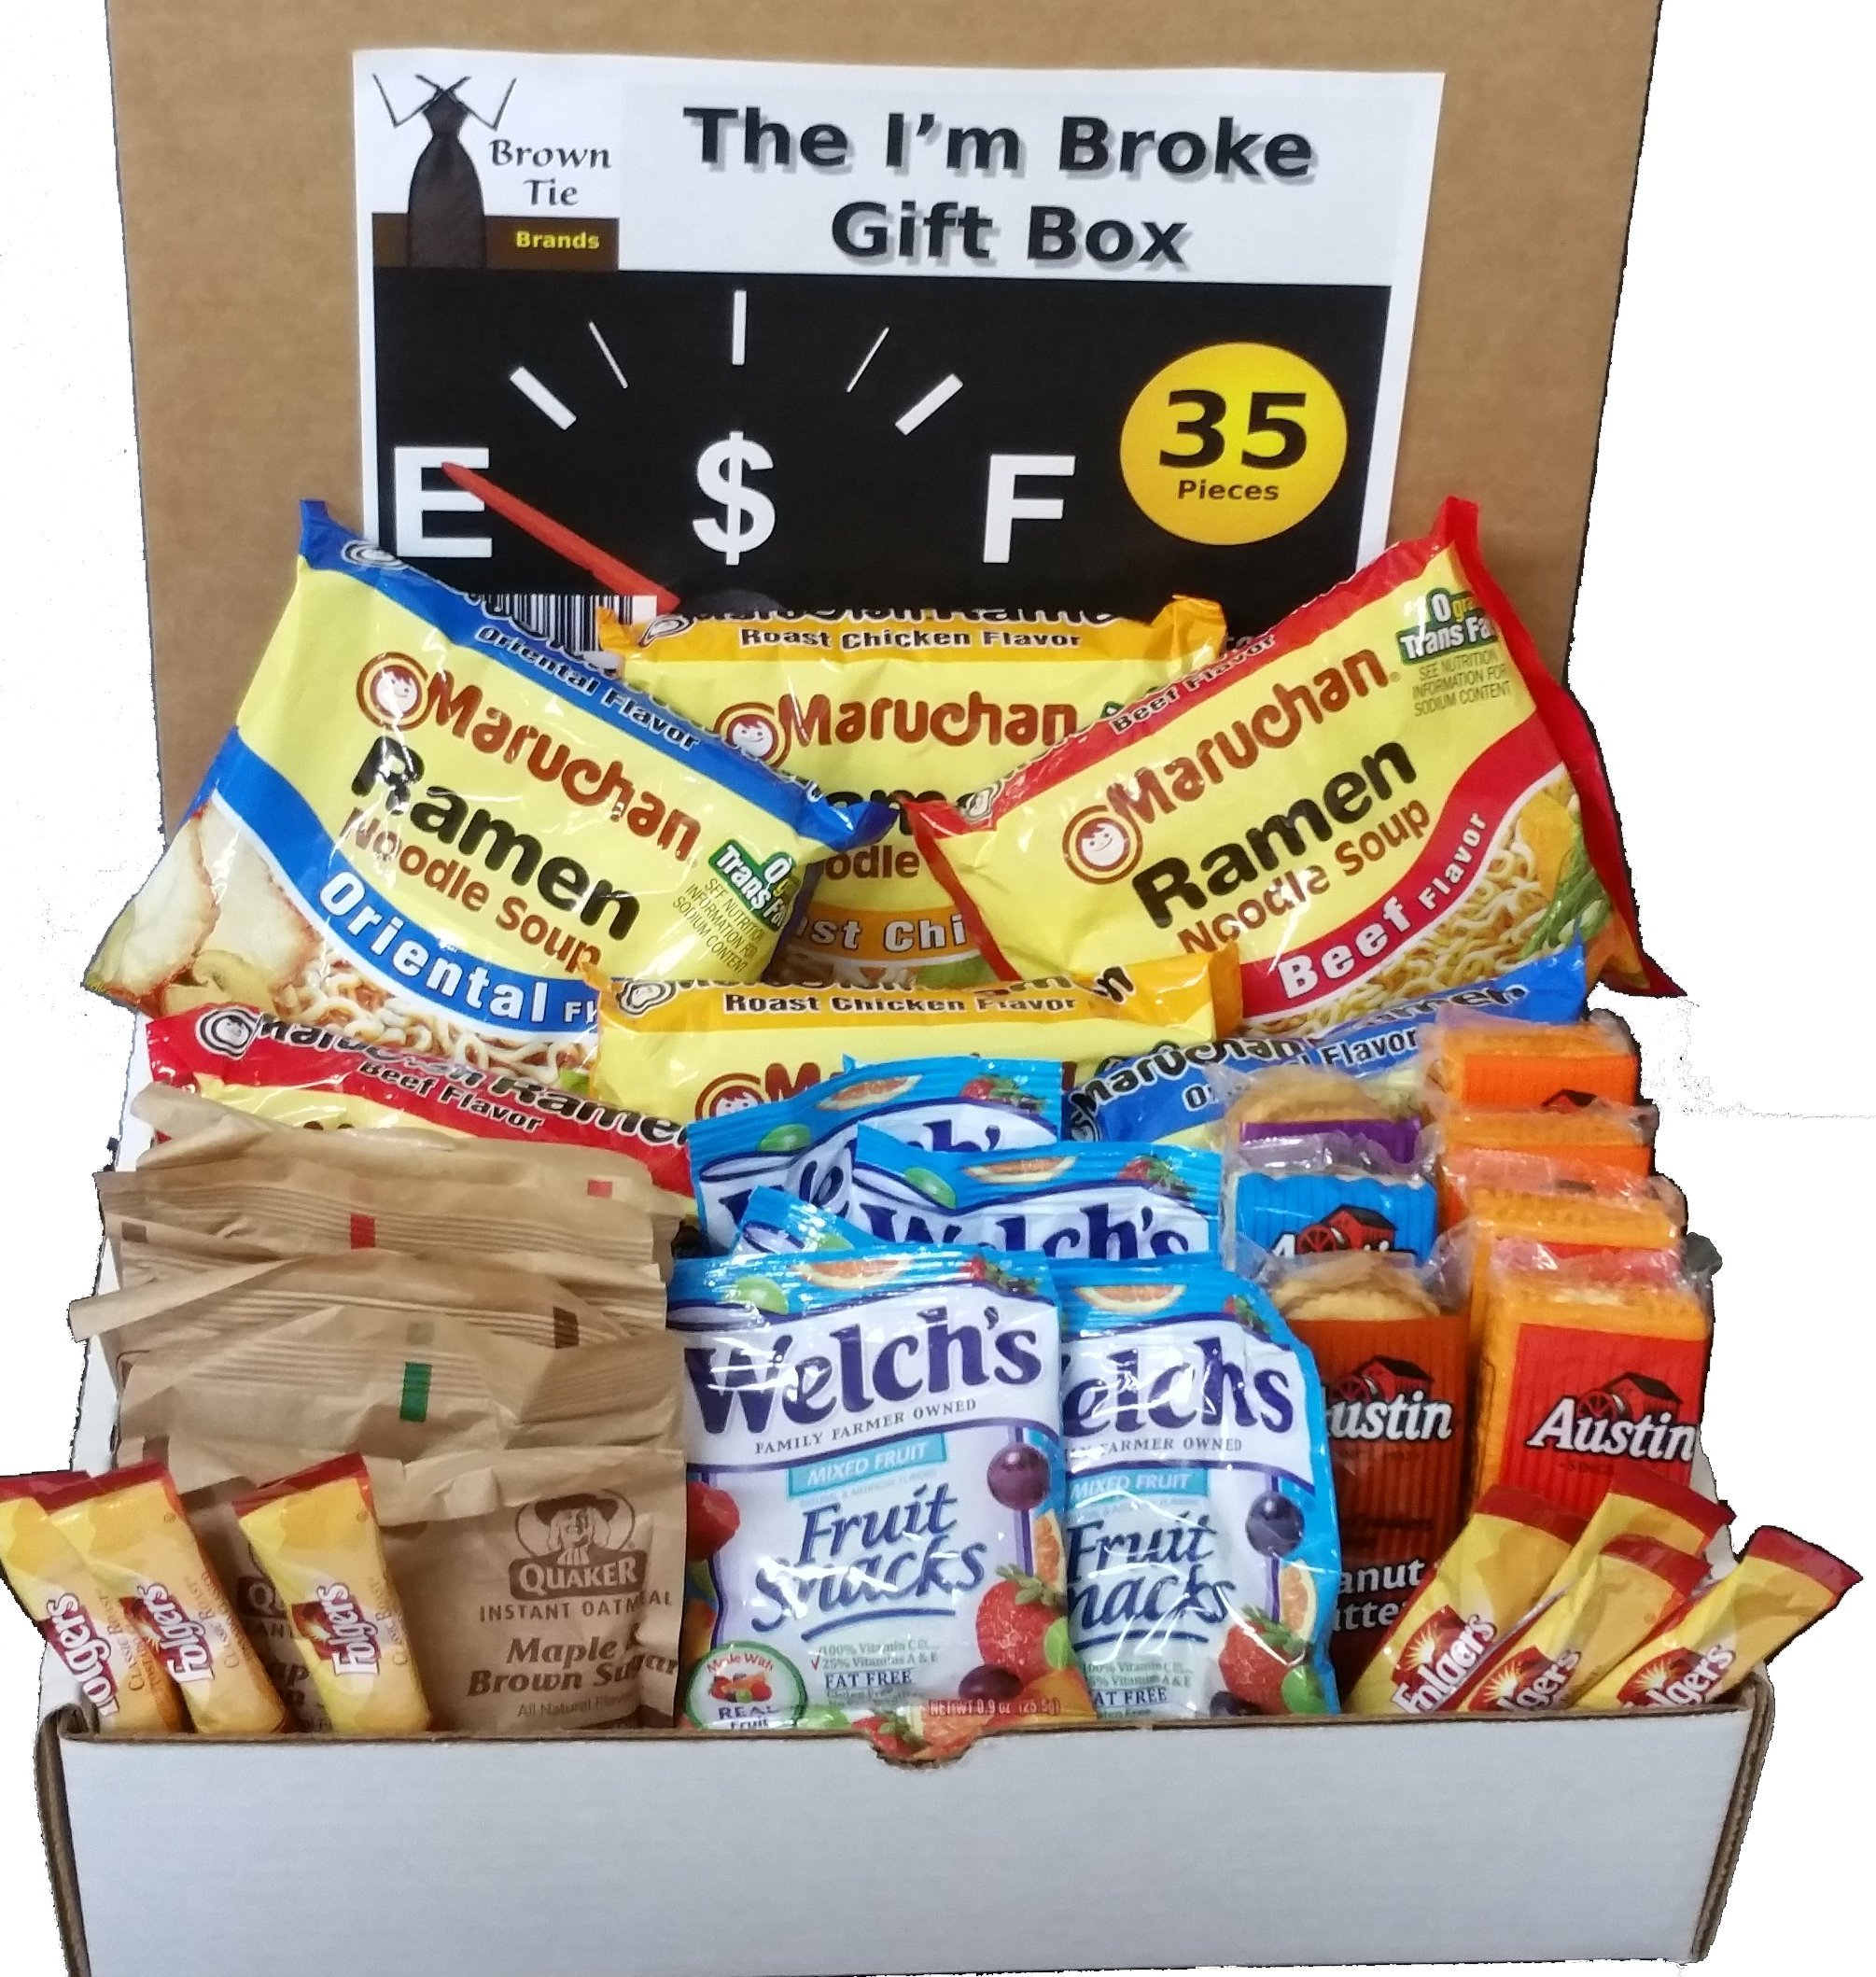 The I'm Broke -College, Student, Military, Office or Gag Gift Box (35 Count) by Brown Tie Brands